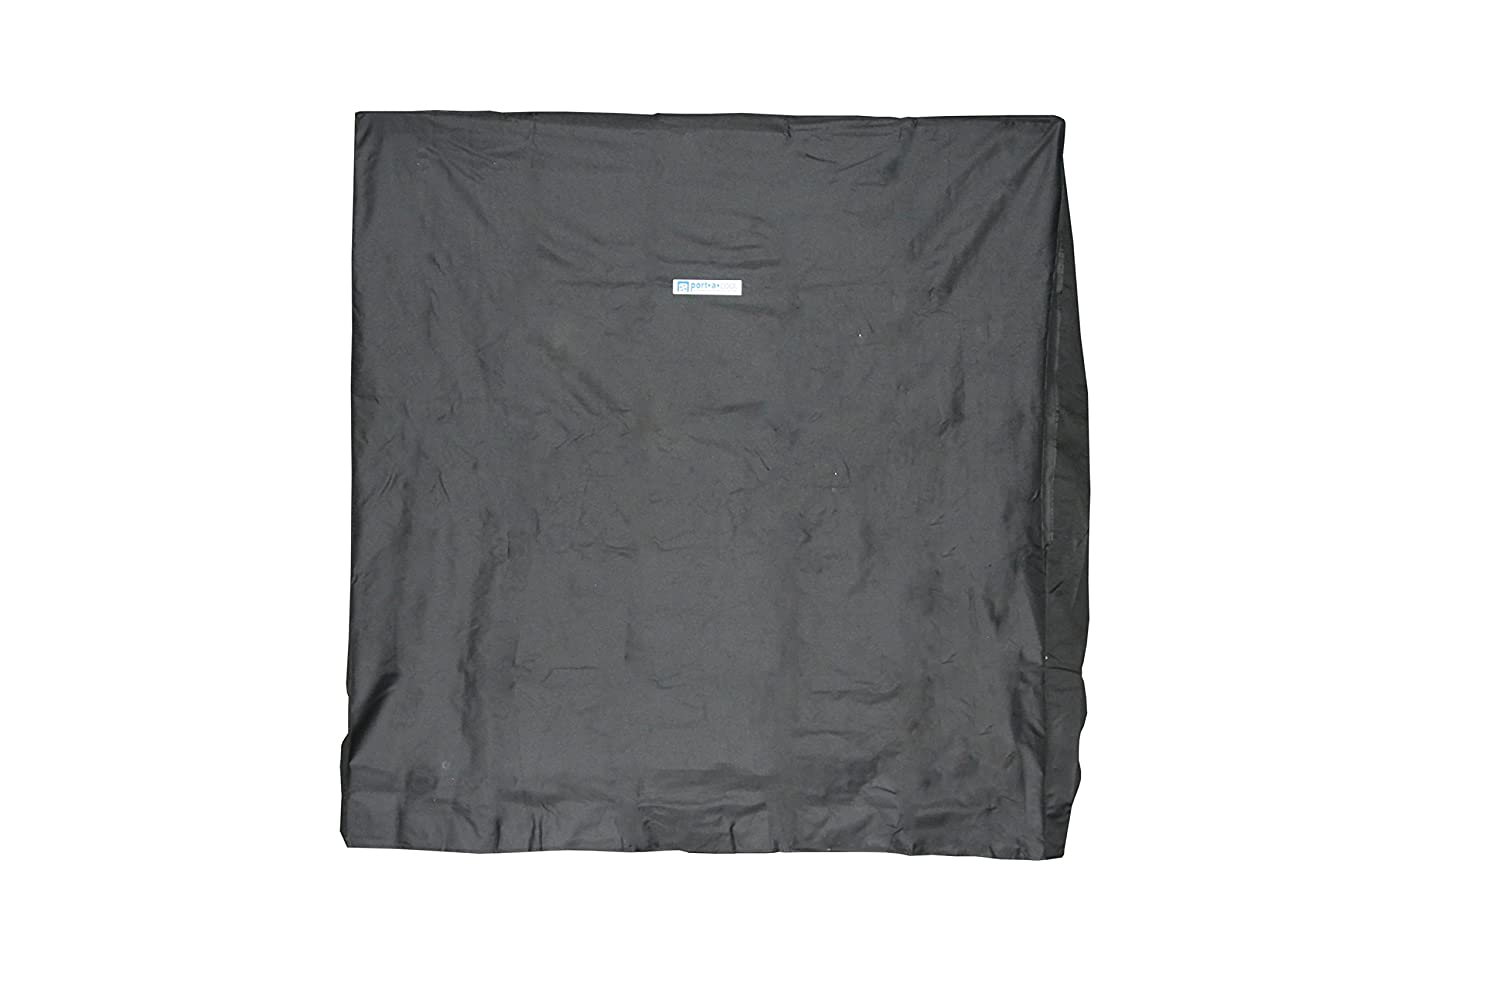 Port-A-Cool PAC-CVR-01 Vinyl Cover for 24-Inch and 36-Inch Port-A-Cool Portable Evaporative Cooling Units